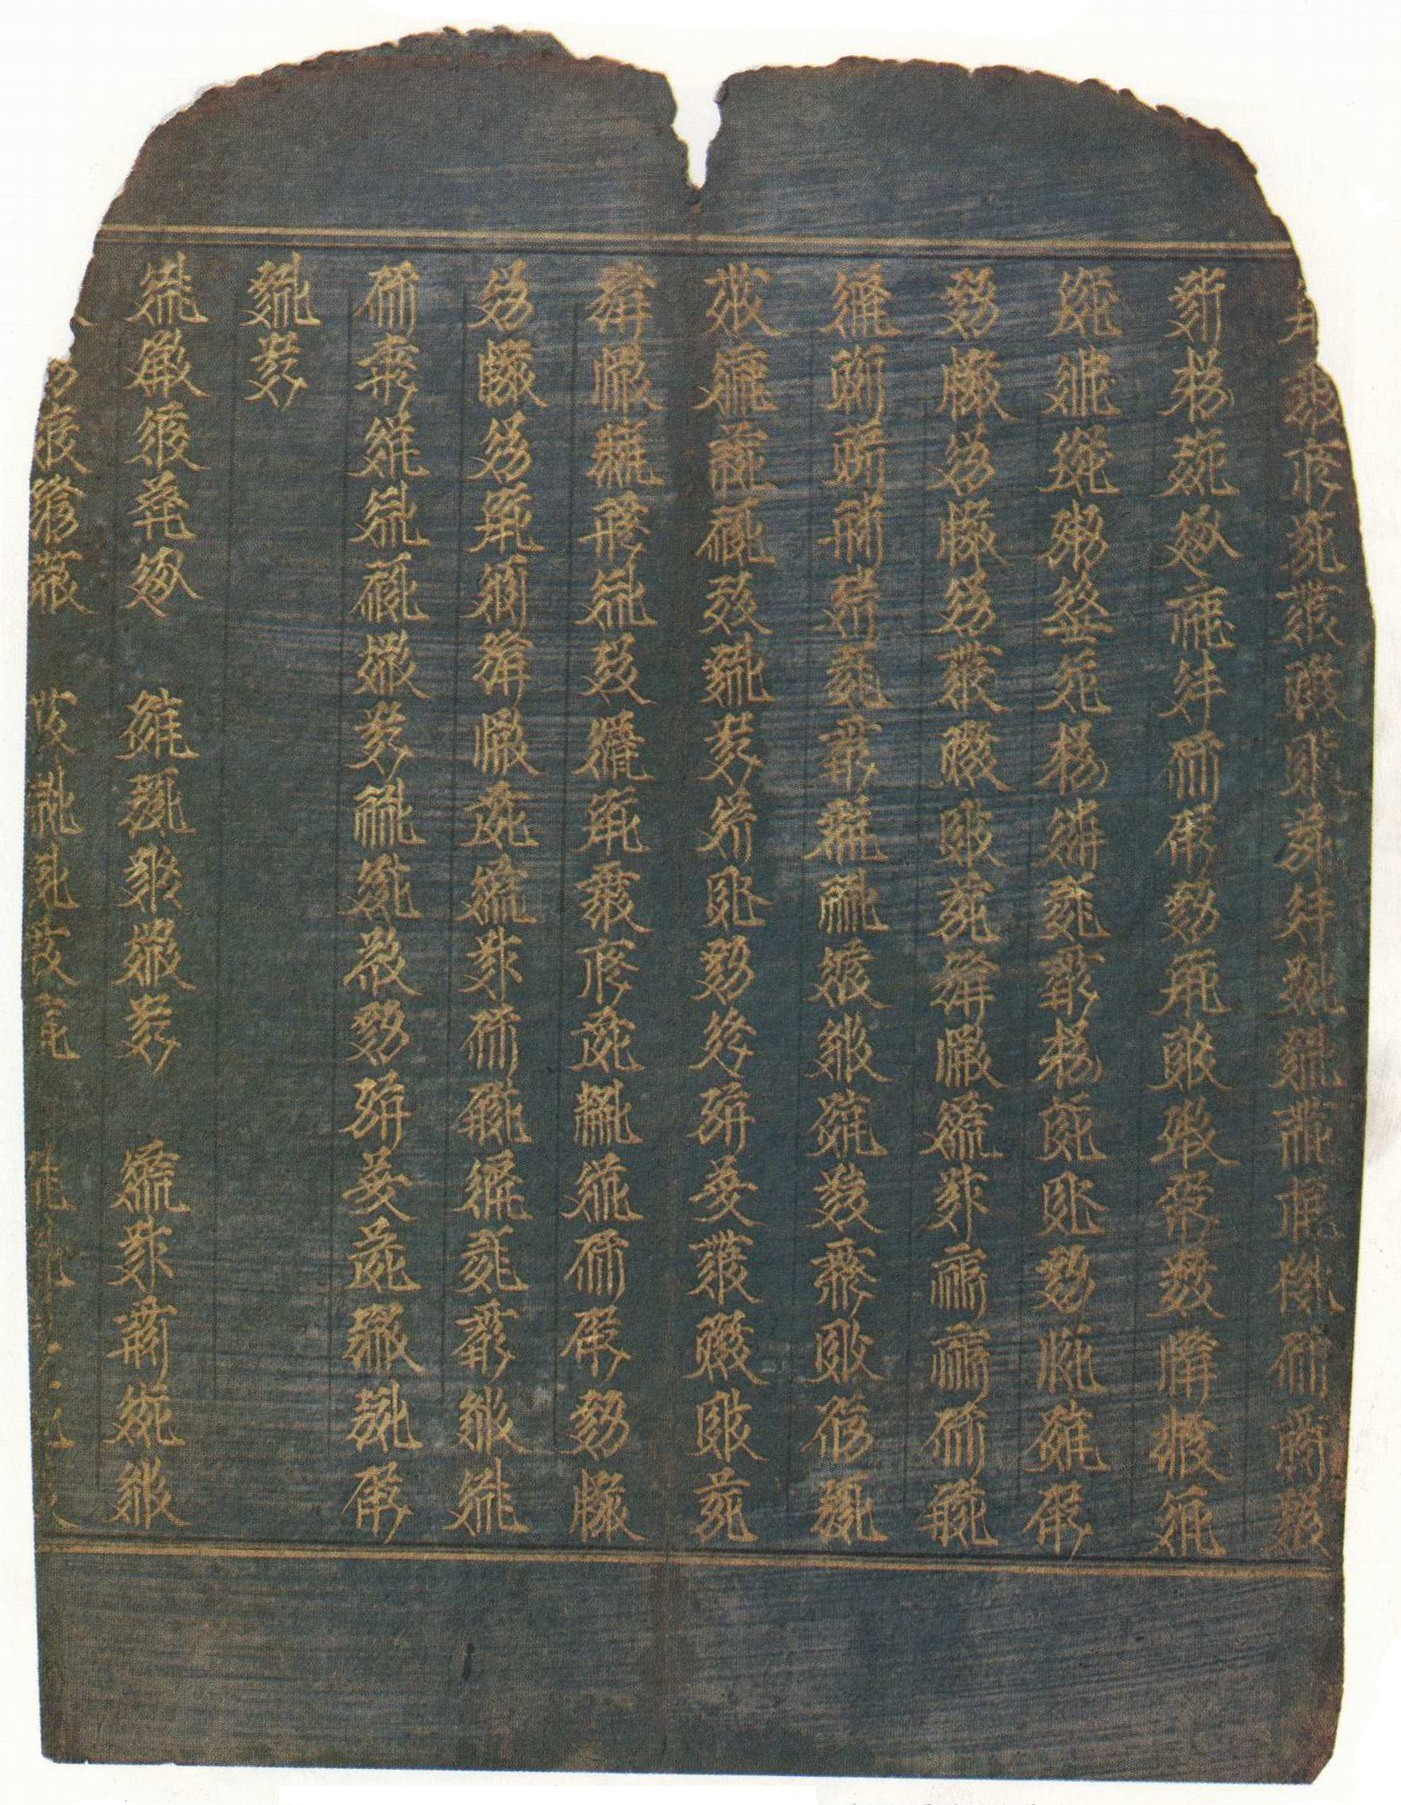 [img]https://upload.wikimedia.org/wikipedia/commons/b/bb/Chrysographic_Tangut_Golden_Light_Sutra.jpg[/img]